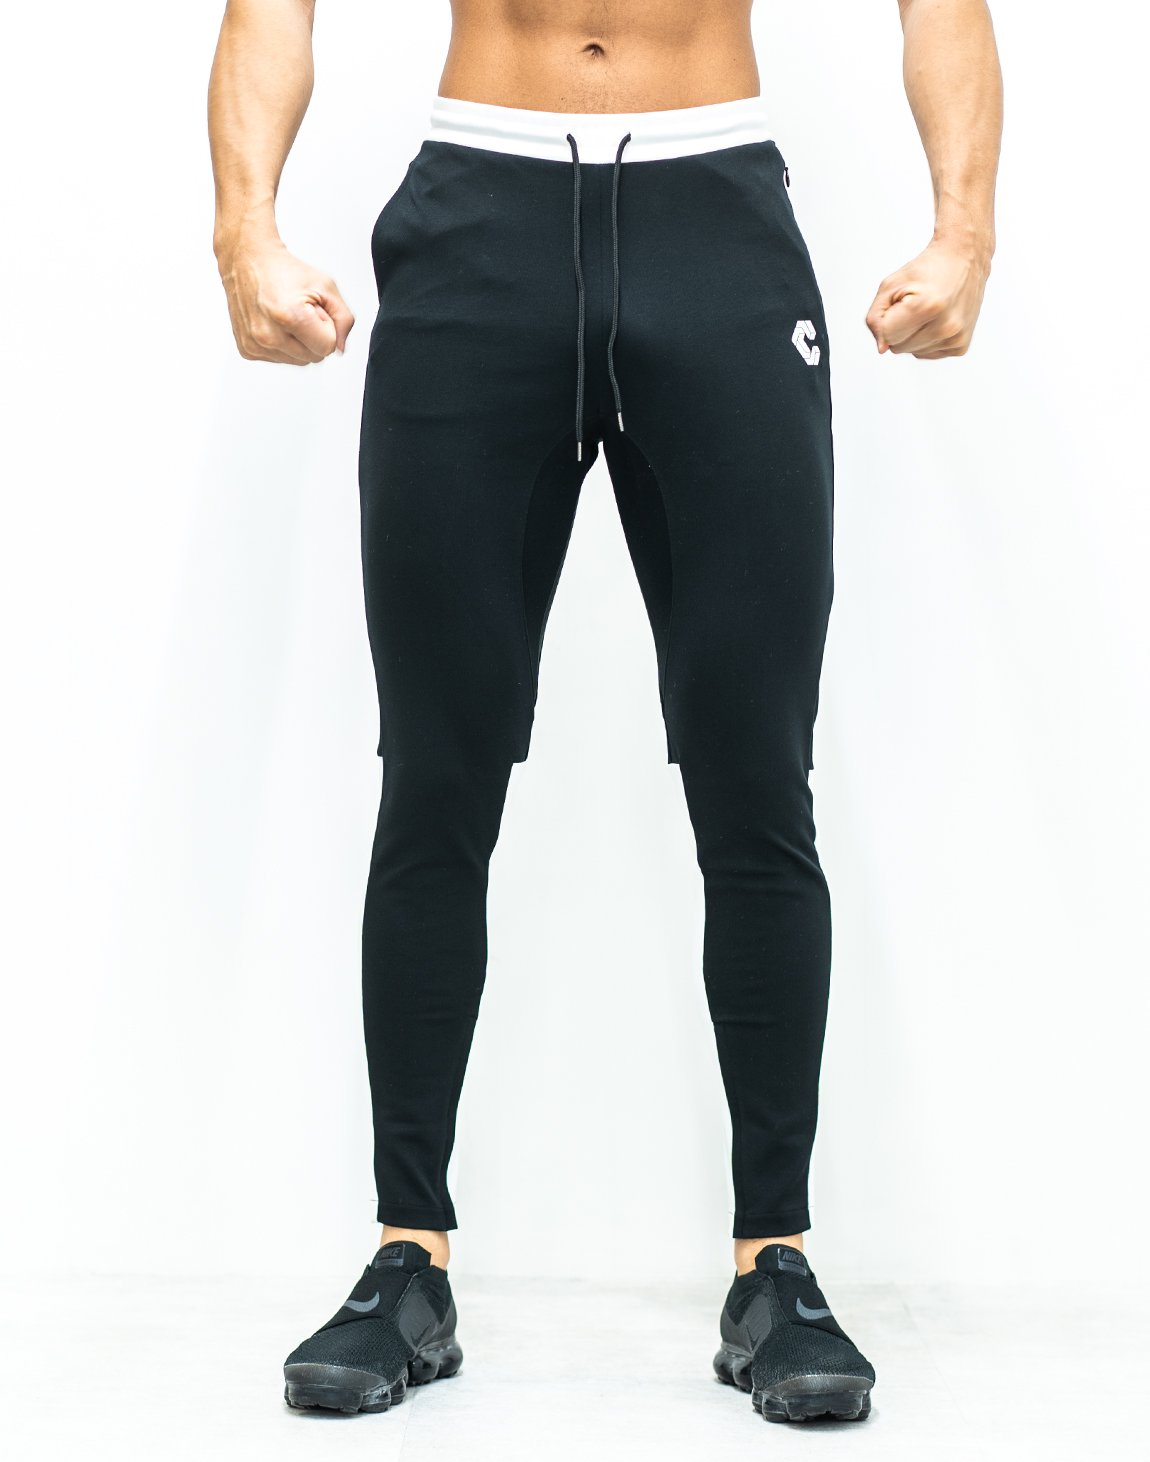 <img class='new_mark_img1' src='https://img.shop-pro.jp/img/new/icons1.gif' style='border:none;display:inline;margin:0px;padding:0px;width:auto;' />CRONOS CALF LOGO Bi-COLOR PANTS 【BLACK×WHITE】